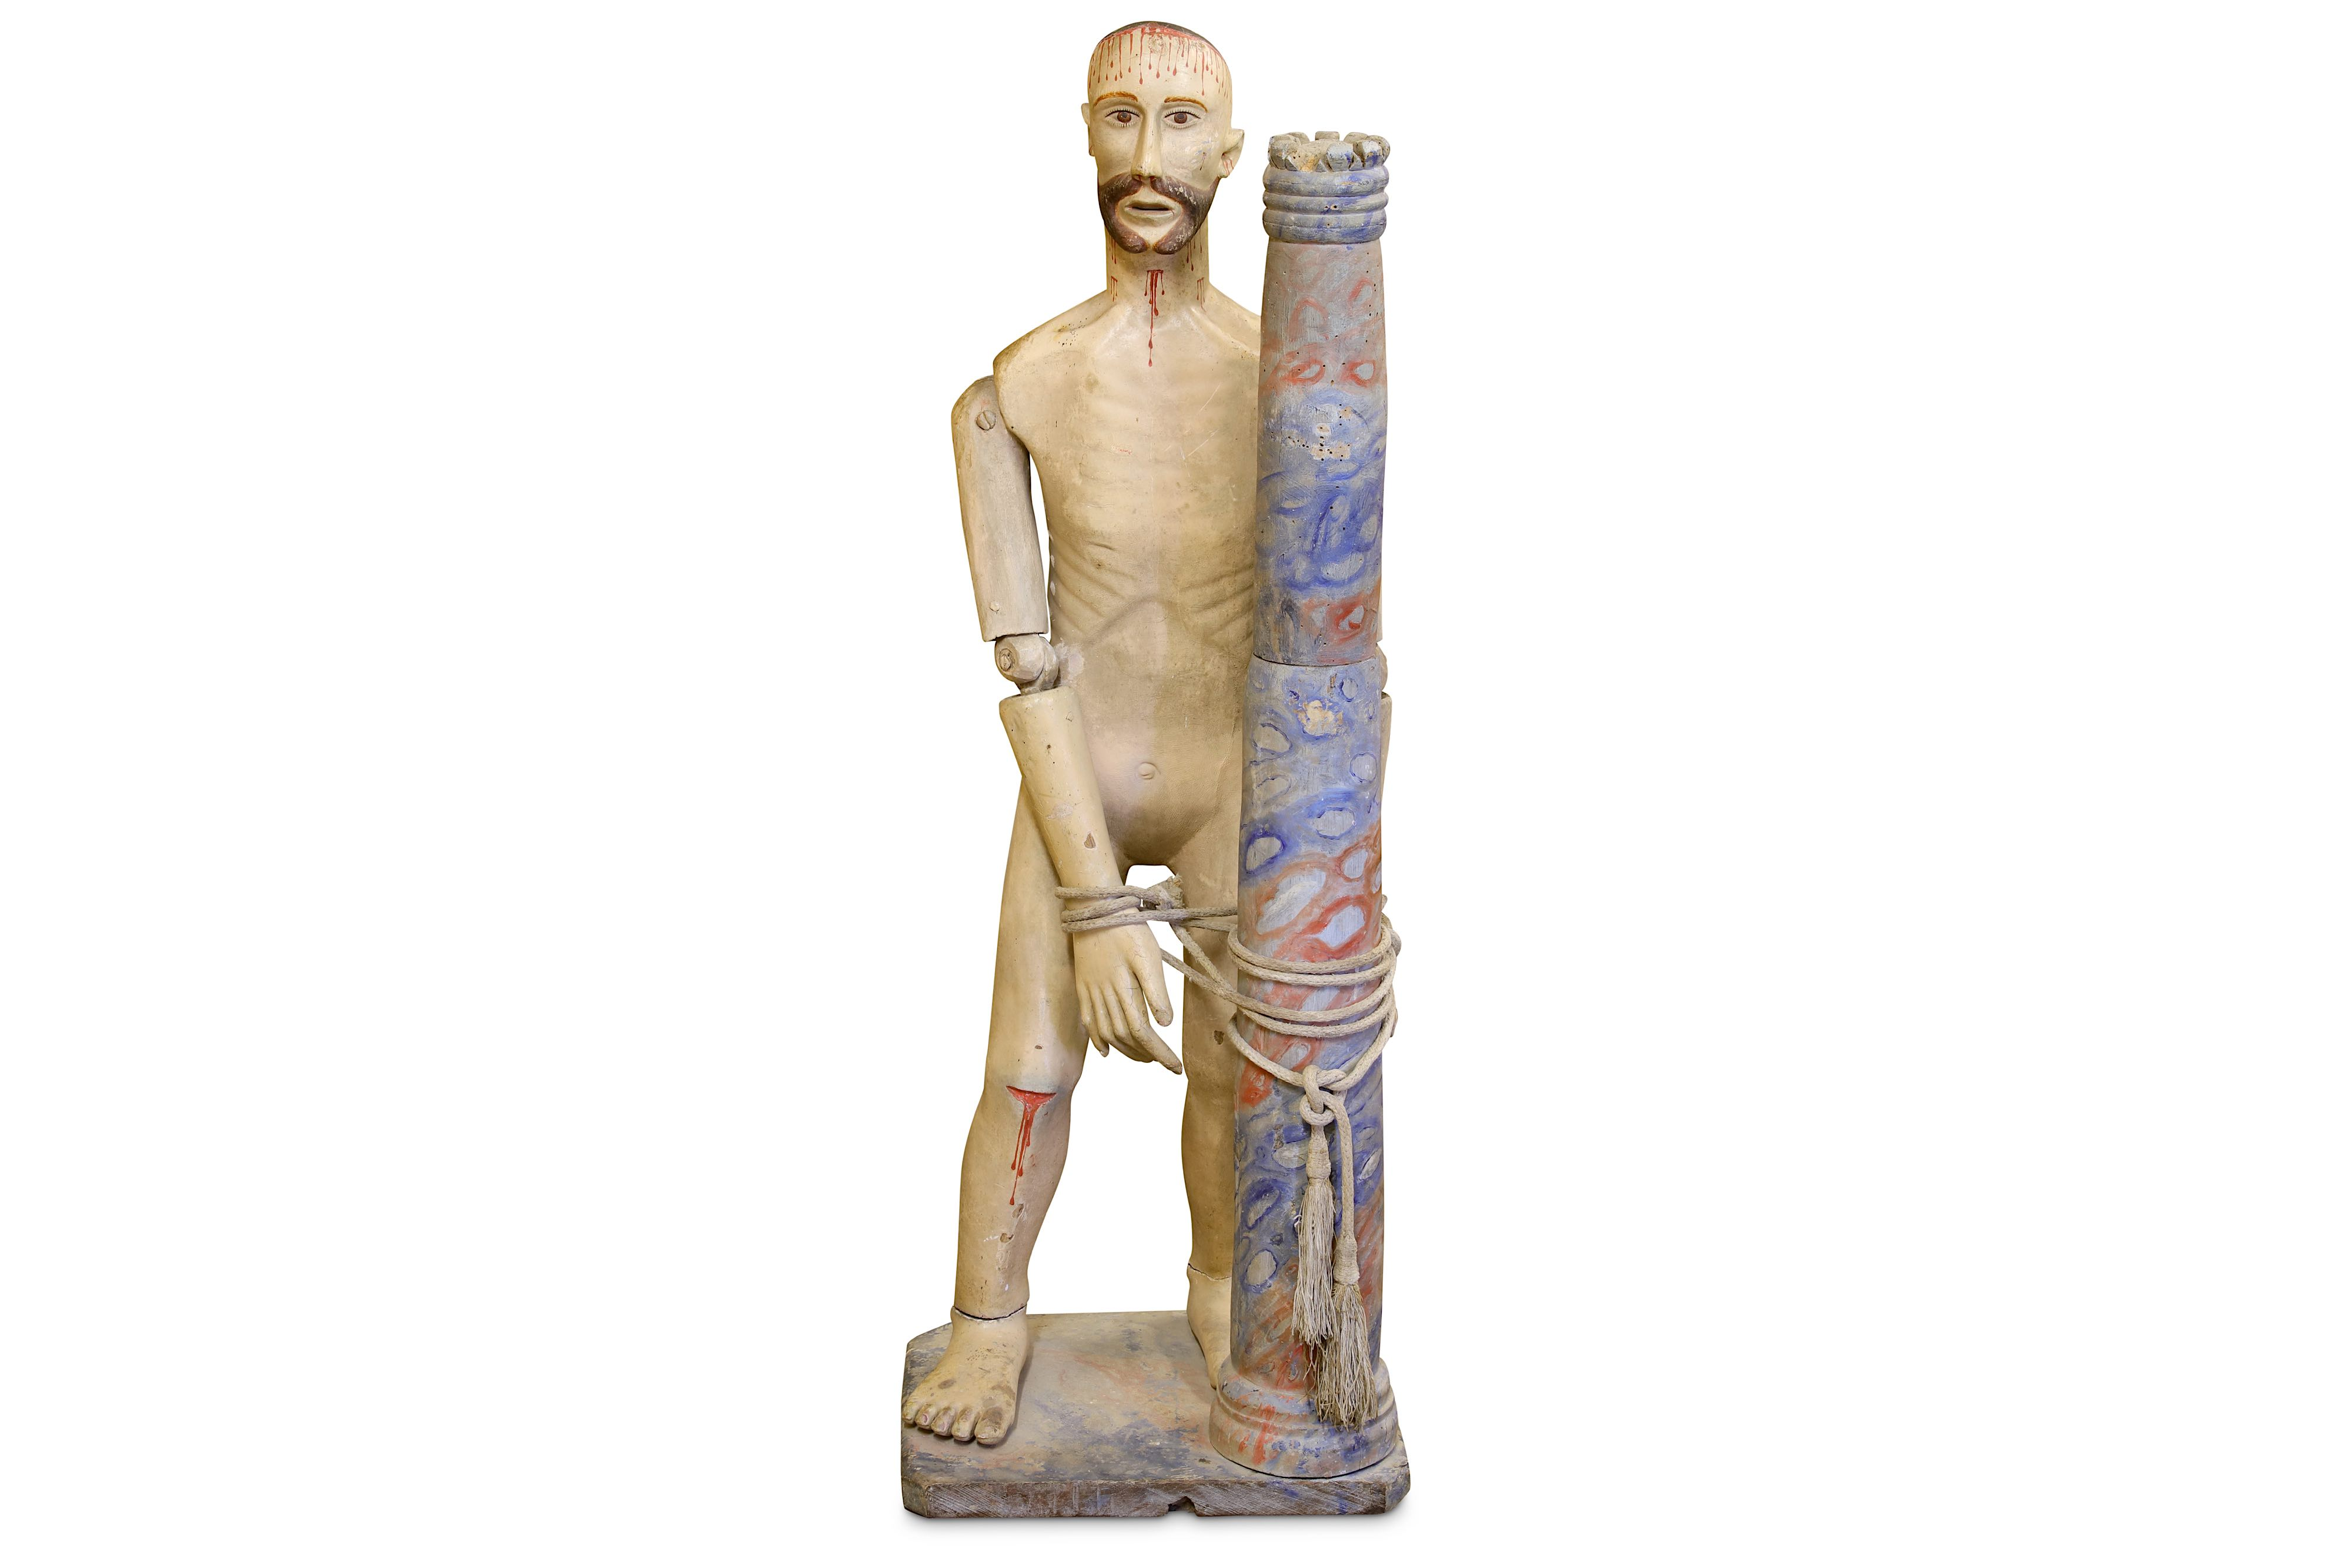 Lot 33 - A 19TH CENTURY CARVED WOOD AND POLYCHROME DECORATED FIGURE OF CHRIST SCOURGED